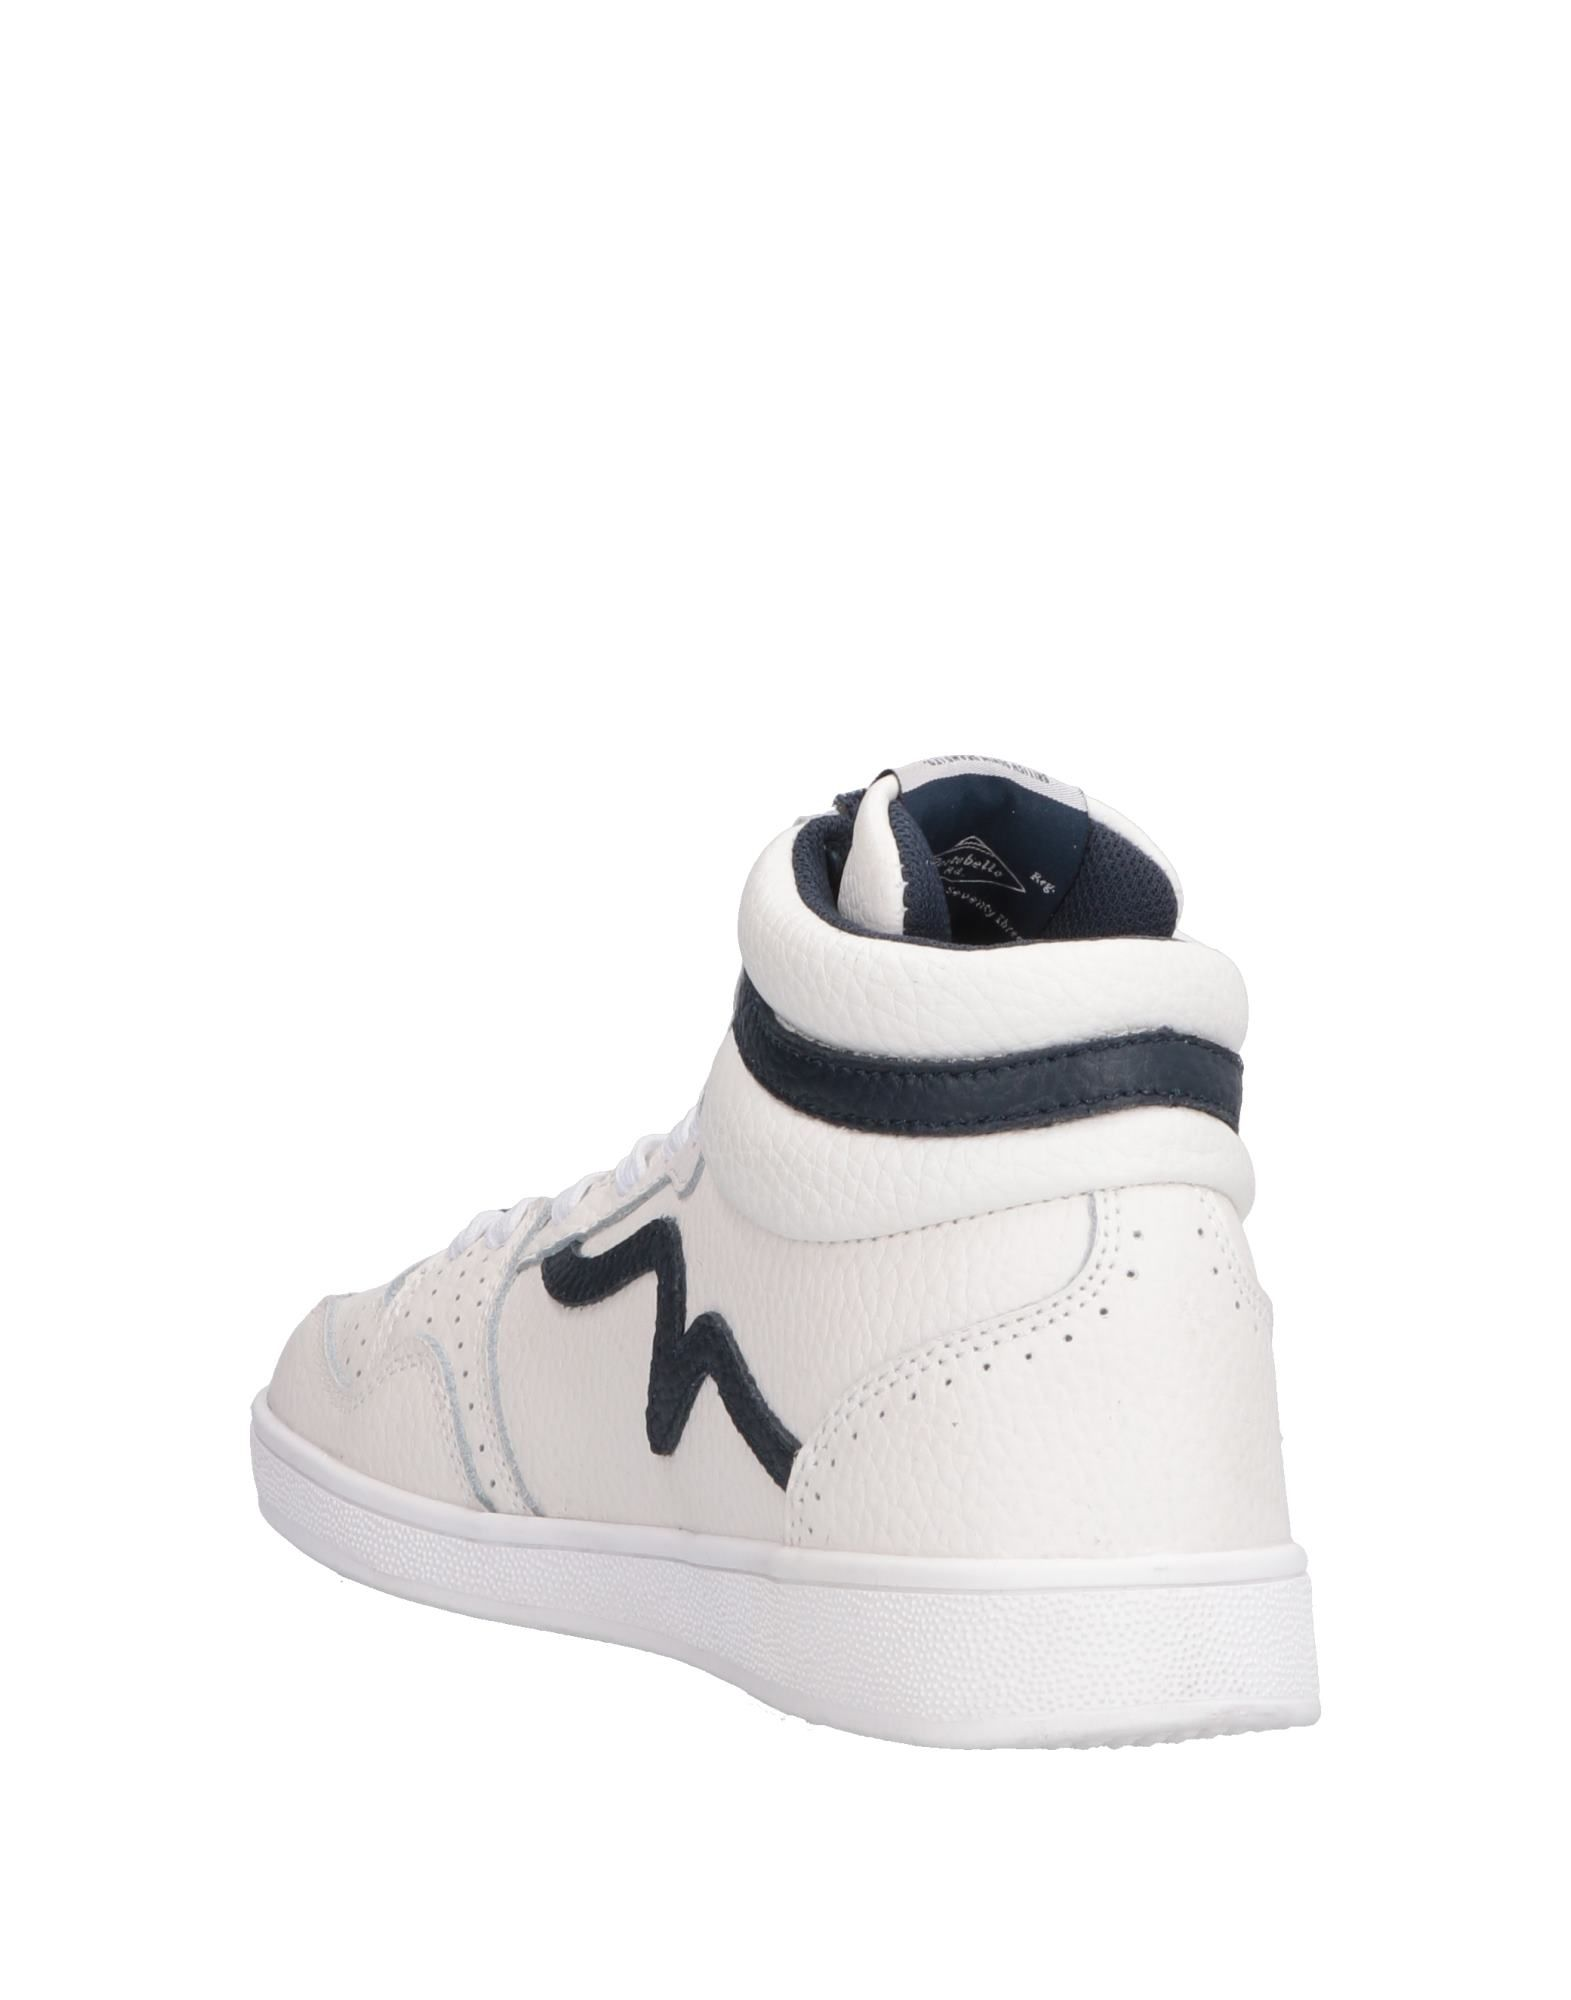 Pepe Jeans Jeans Jeans Sneakers - Women Pepe Jeans Sneakers online on  United Kingdom - 11578210EQ 632d2c